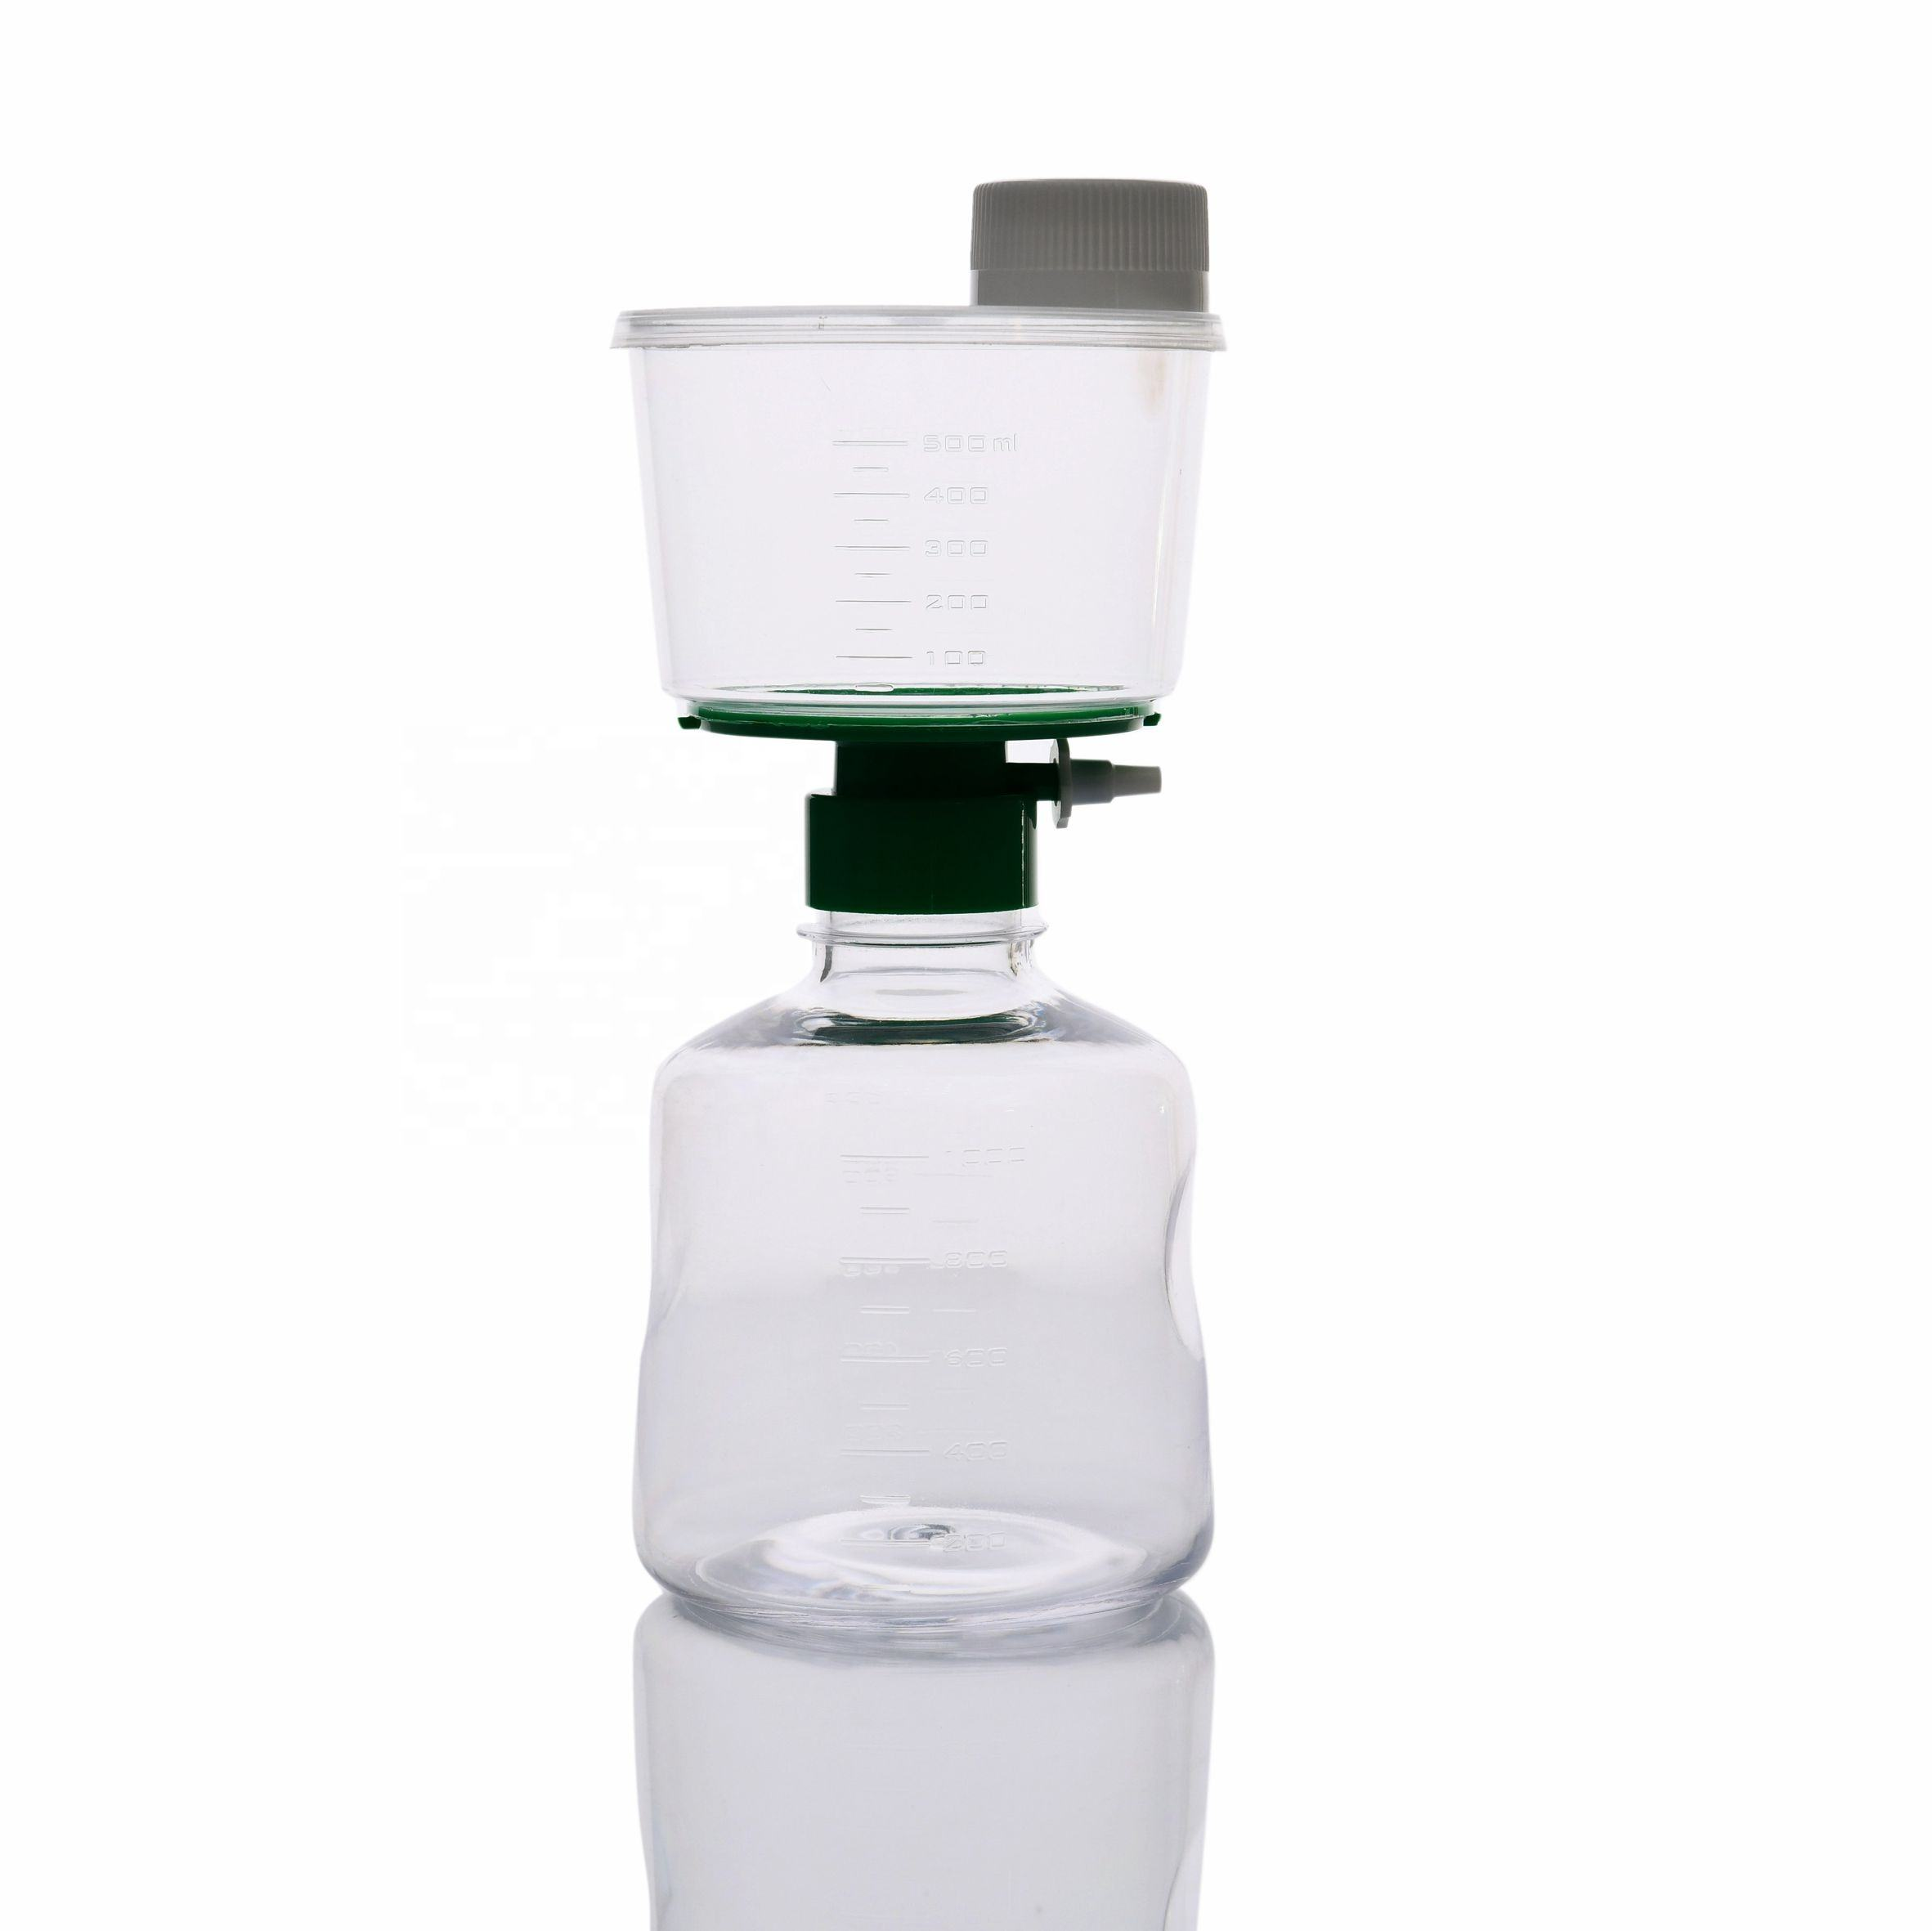 150ml 250ml 500ml 1000ml Disposable Vacuum Filter Units for Lab Use